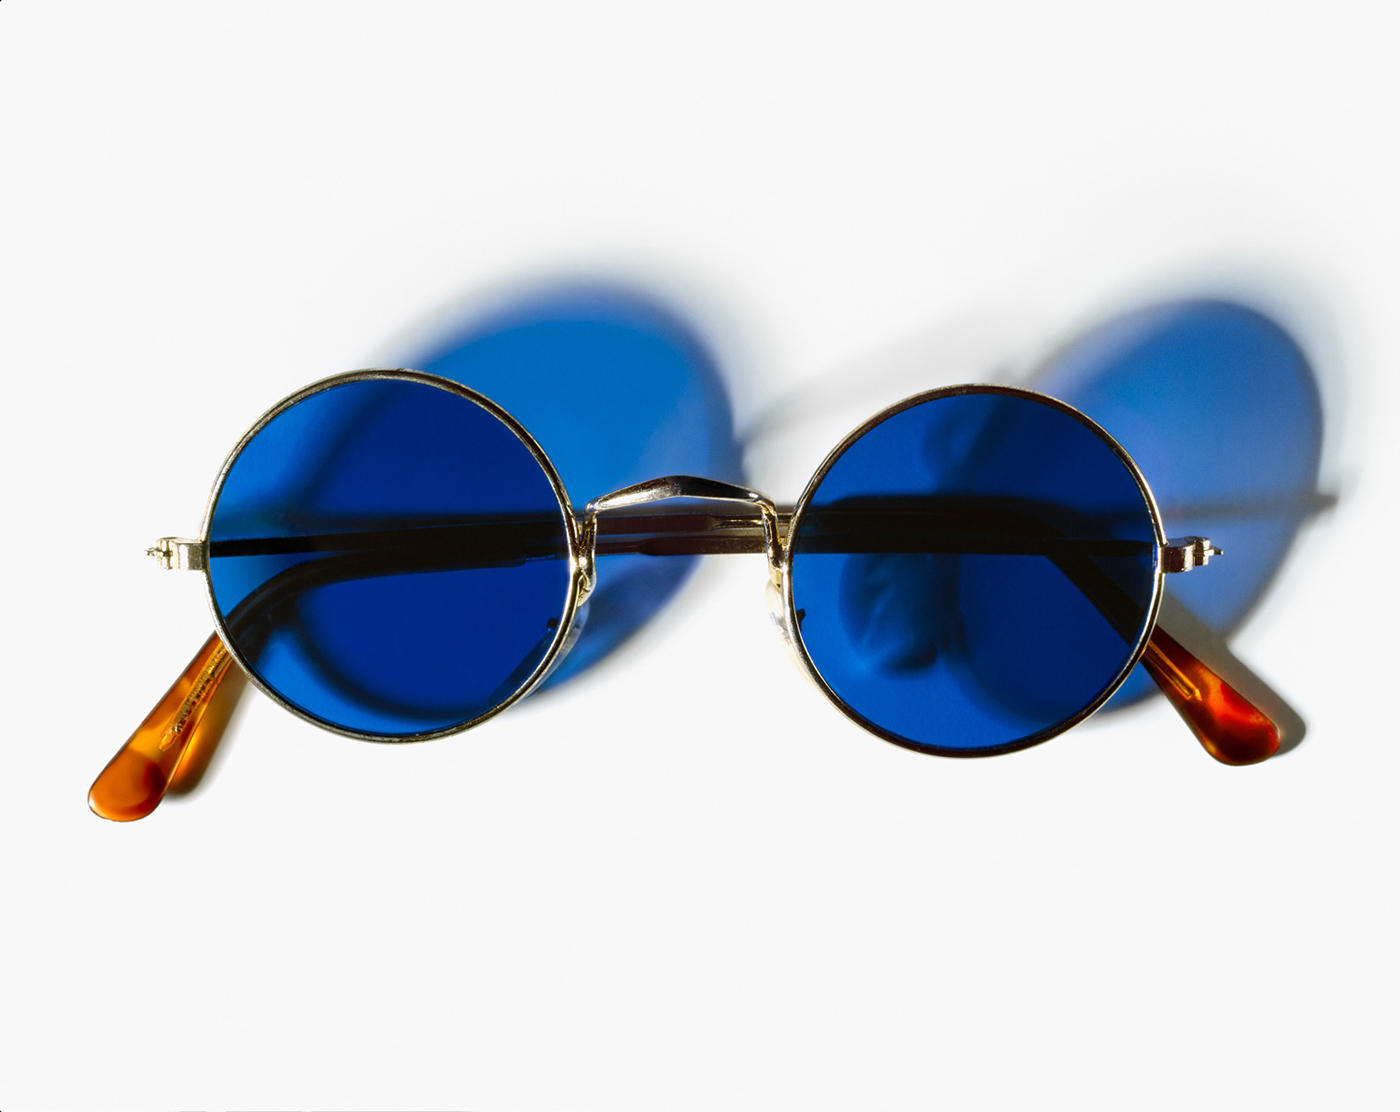 © Henry Leutwyler, John Lennon's (1940-1980) gold wire-rimmed sunglasses with blue lenses, de la série Document, 2007